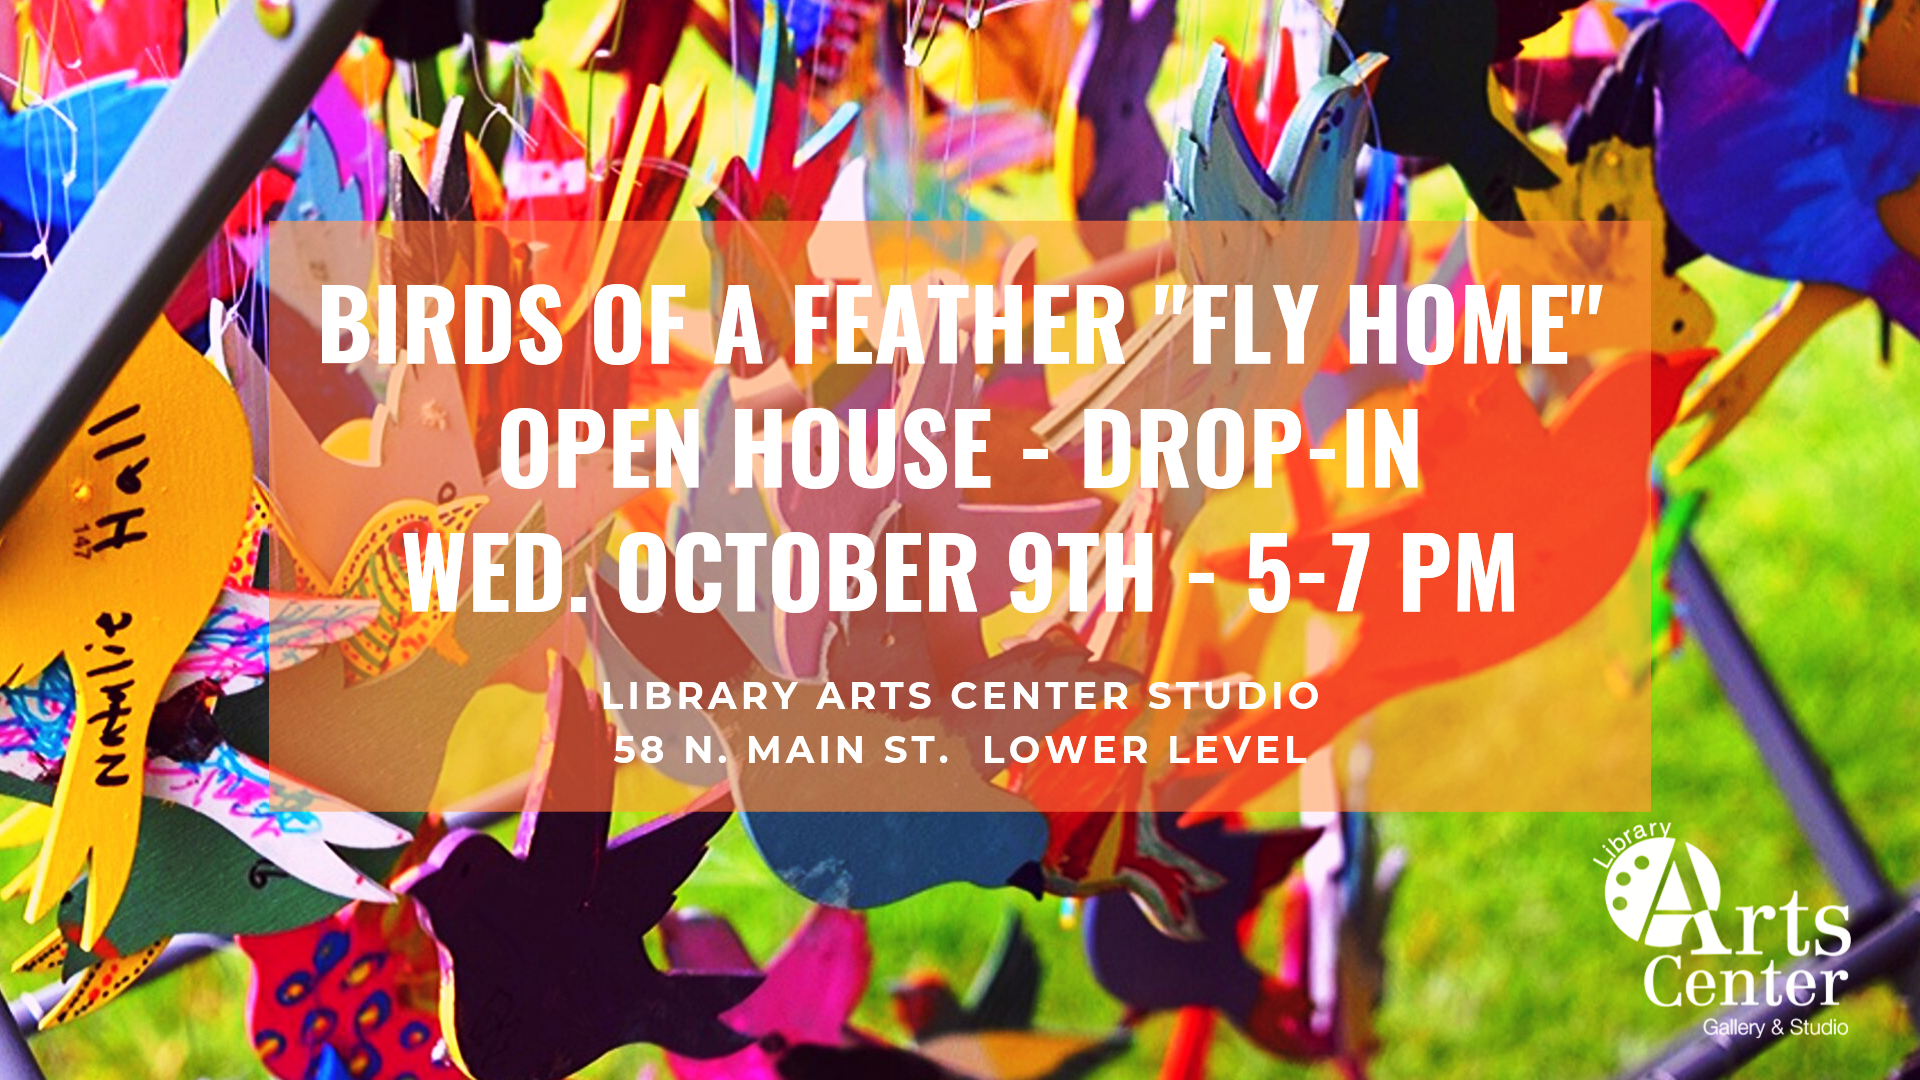 Open Studio at the Library Arts Center